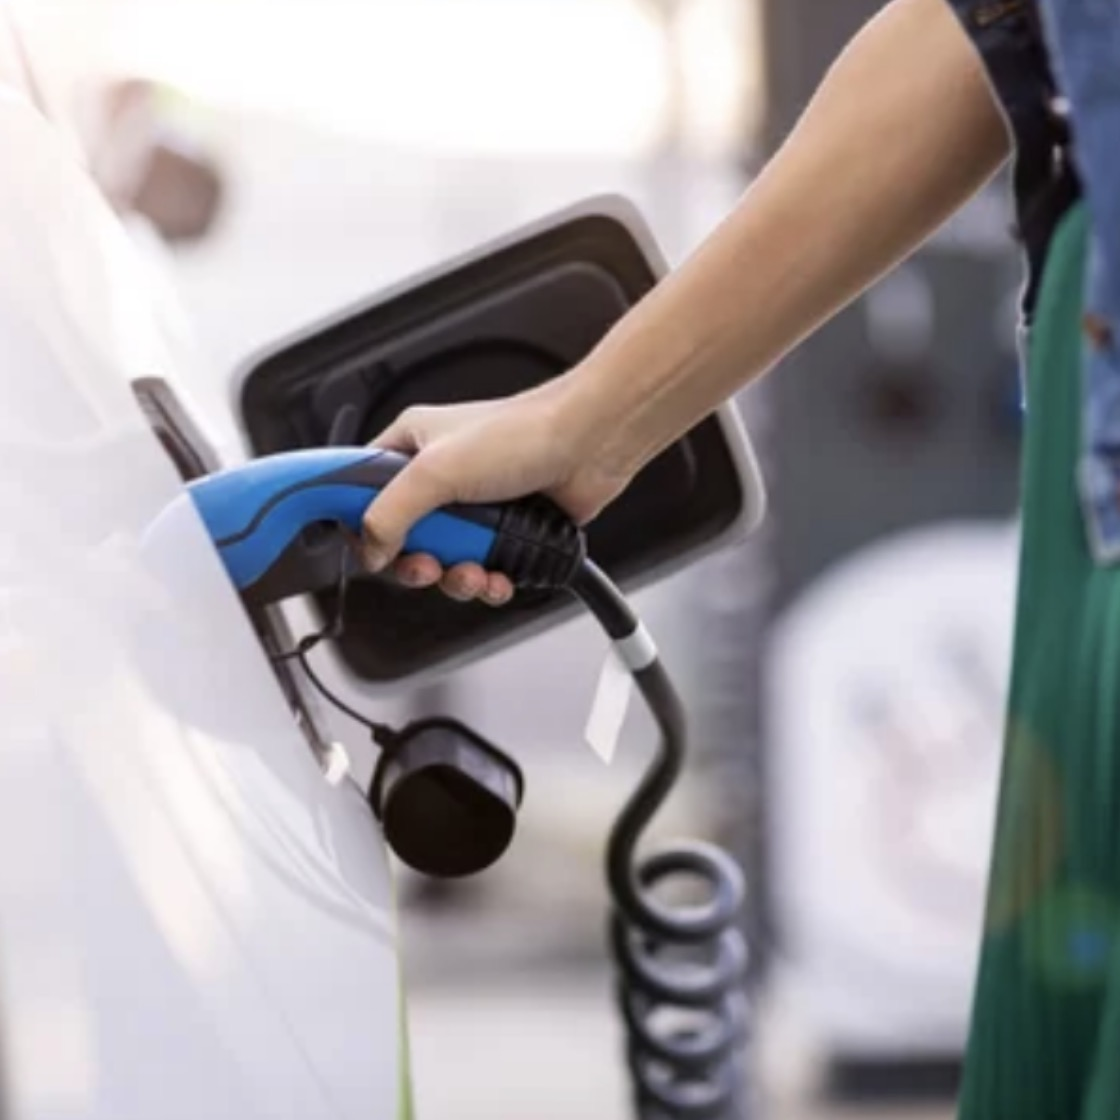 A white woman's arm holding and plugging in an electric car charger